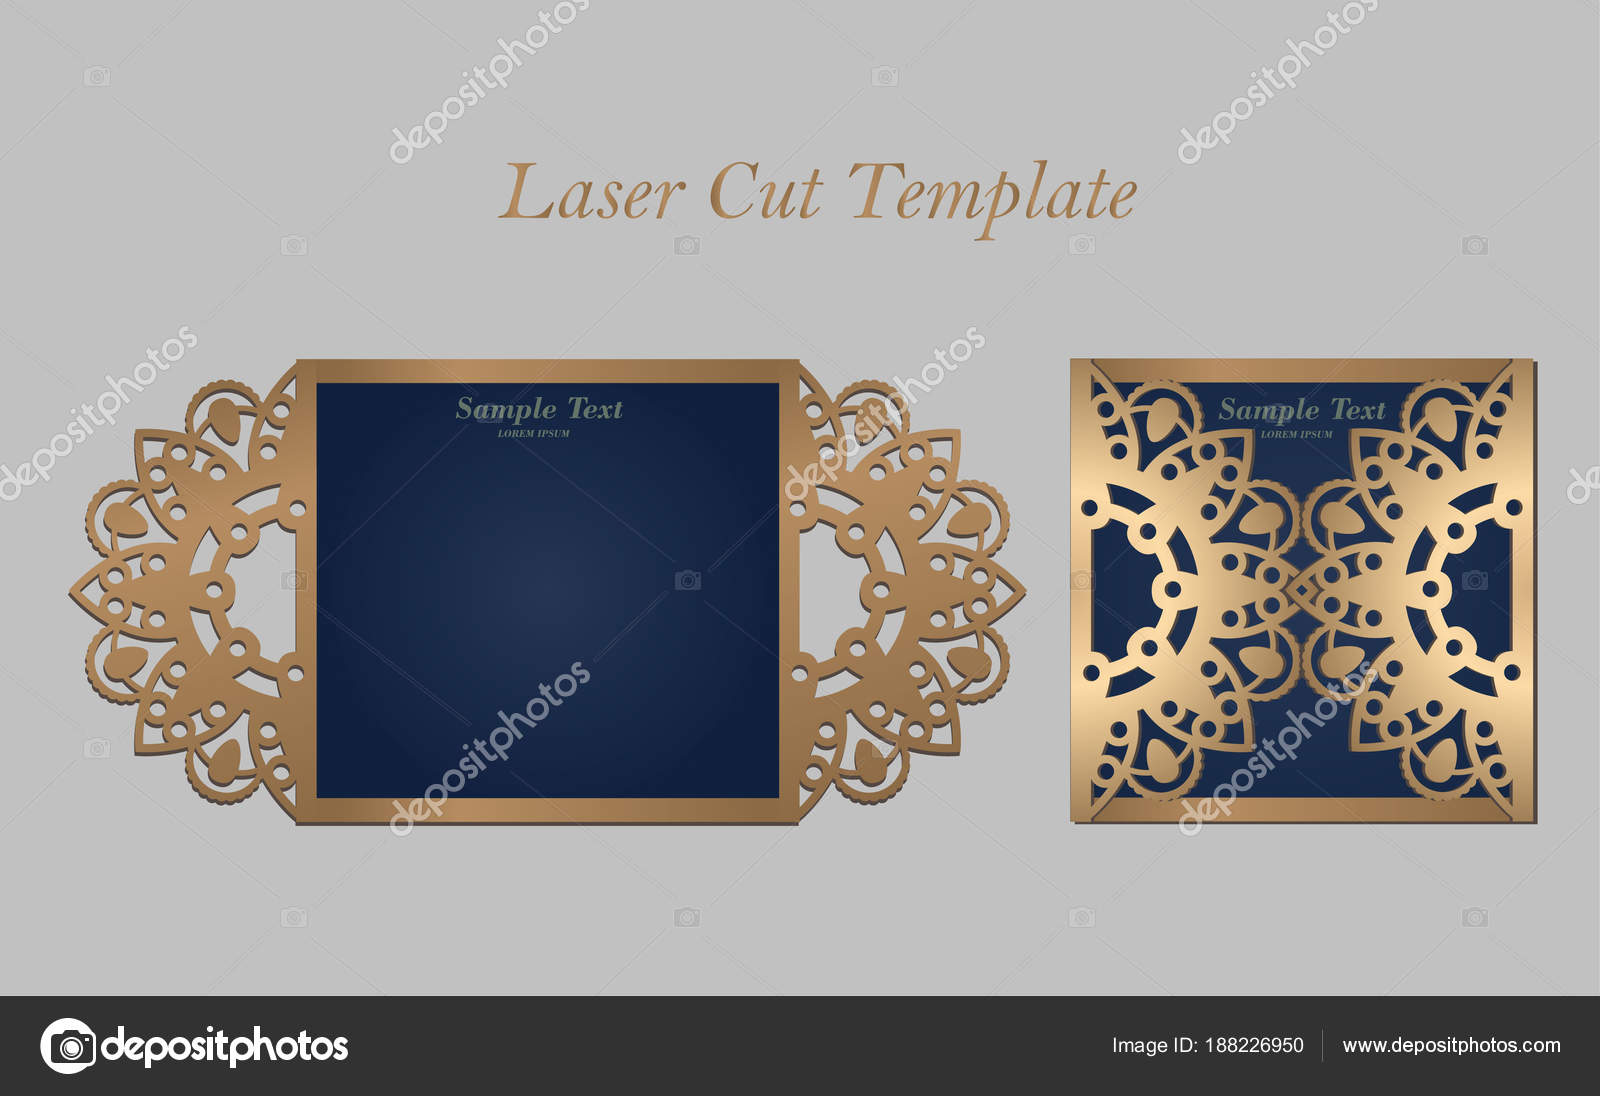 Digital vector file for laser cutting the envelope is an invitation digital vector file for laser cutting swirly ornate wedding invitation envelope vector by yaroslavna2408 stopboris Choice Image